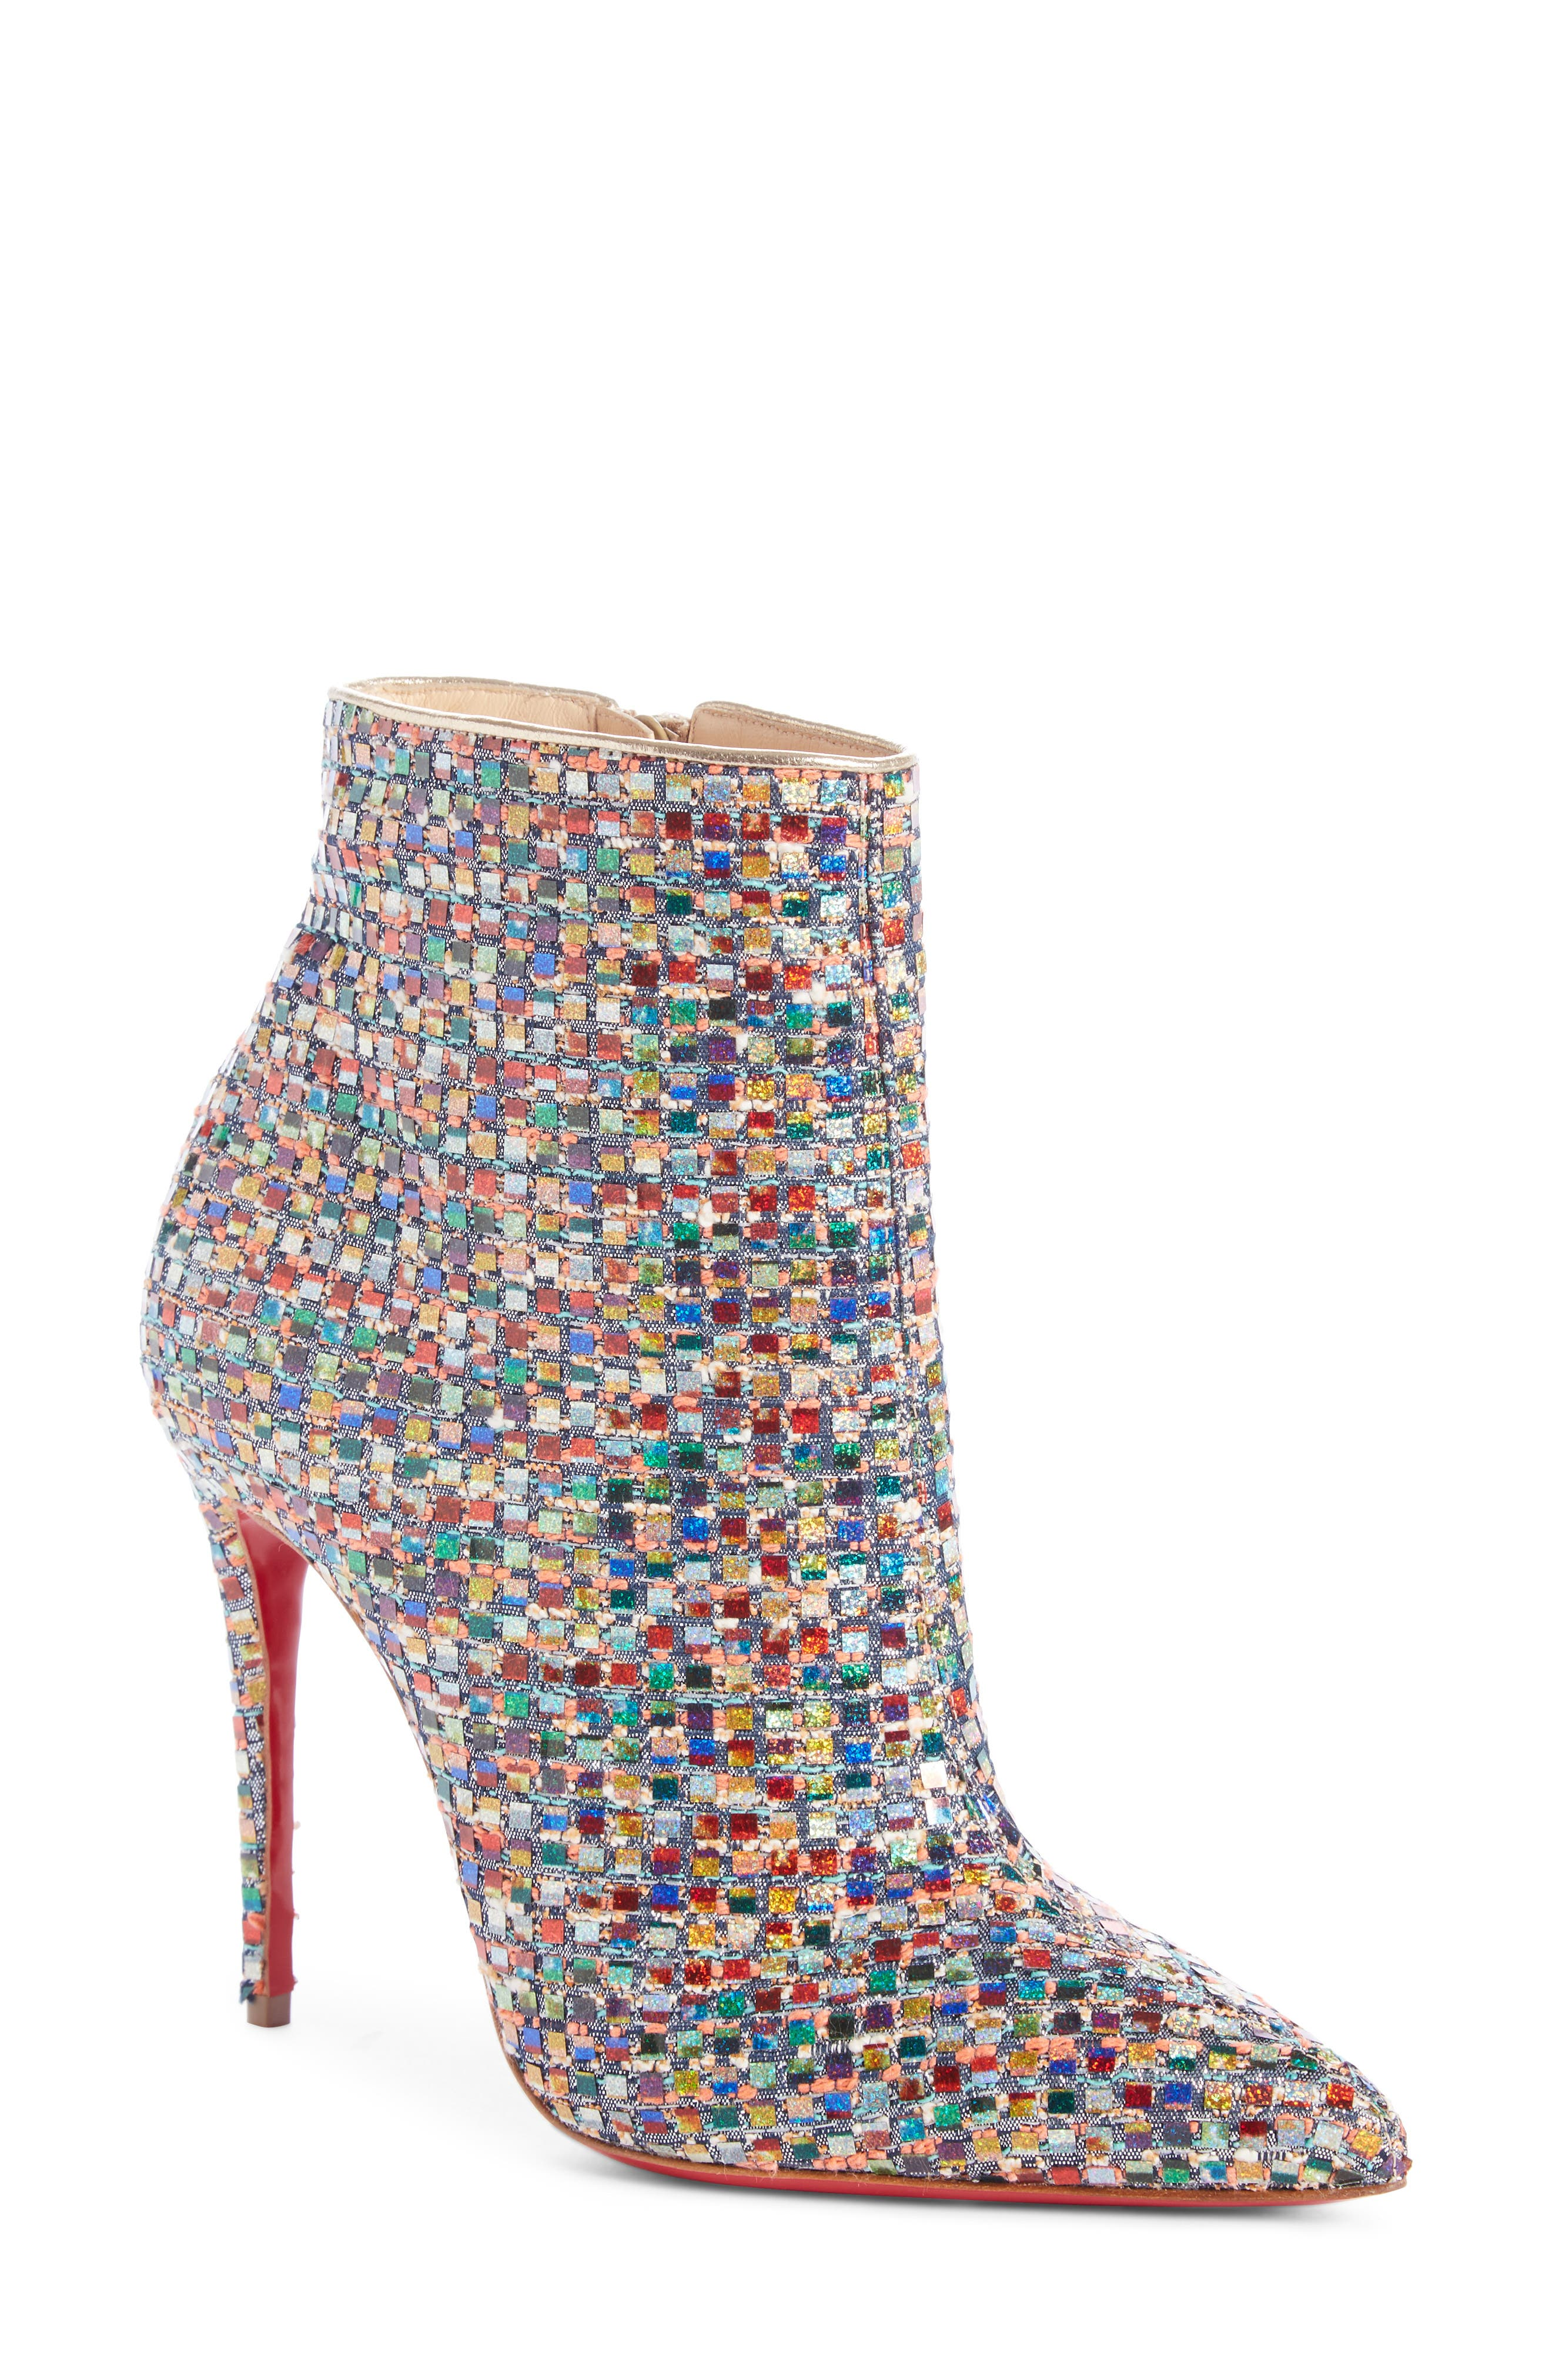 Christian Louboutin So Kate Mosaic Bootie